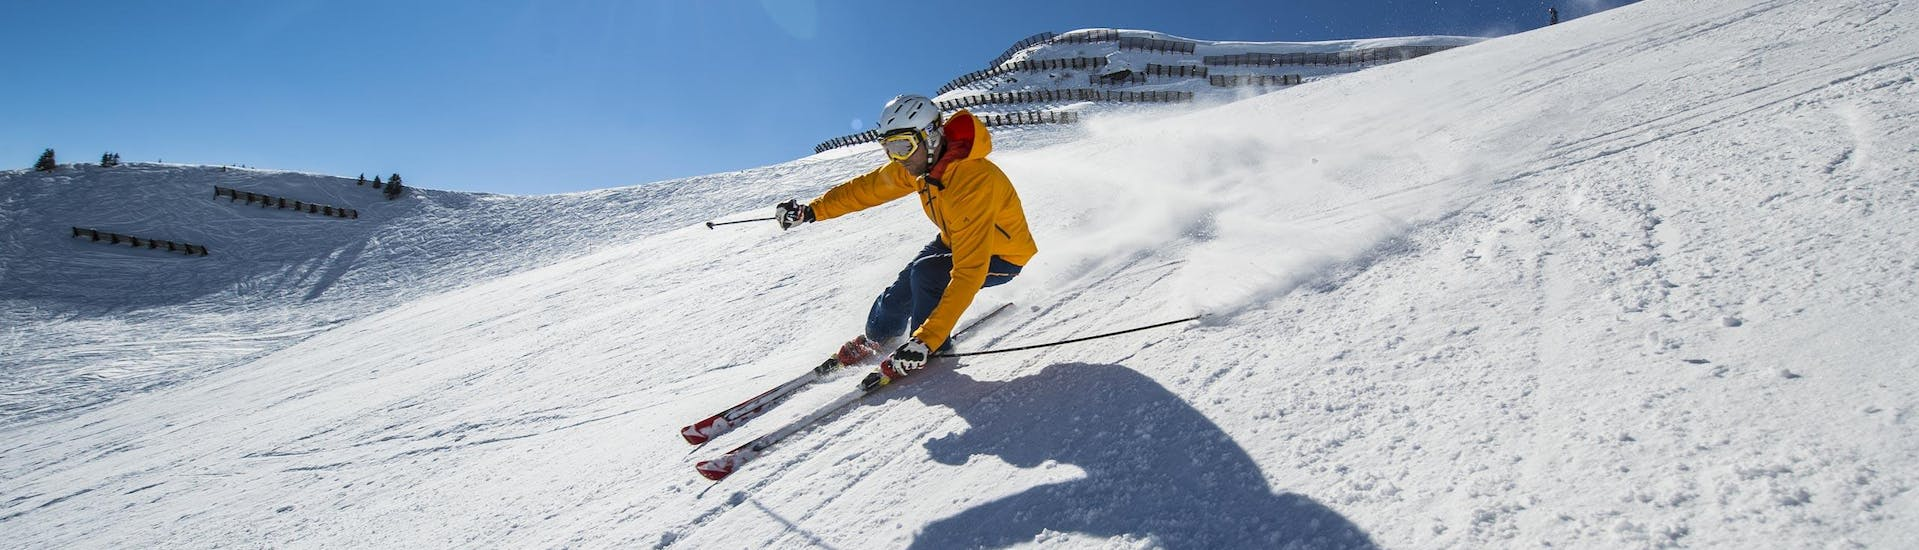 Private Ski Lessons for Adults of All Levels: A skier is skiing down a sunny ski slope while participating in an activity offered by Skischule Alpin-Profis Kirchberg/Tirol.